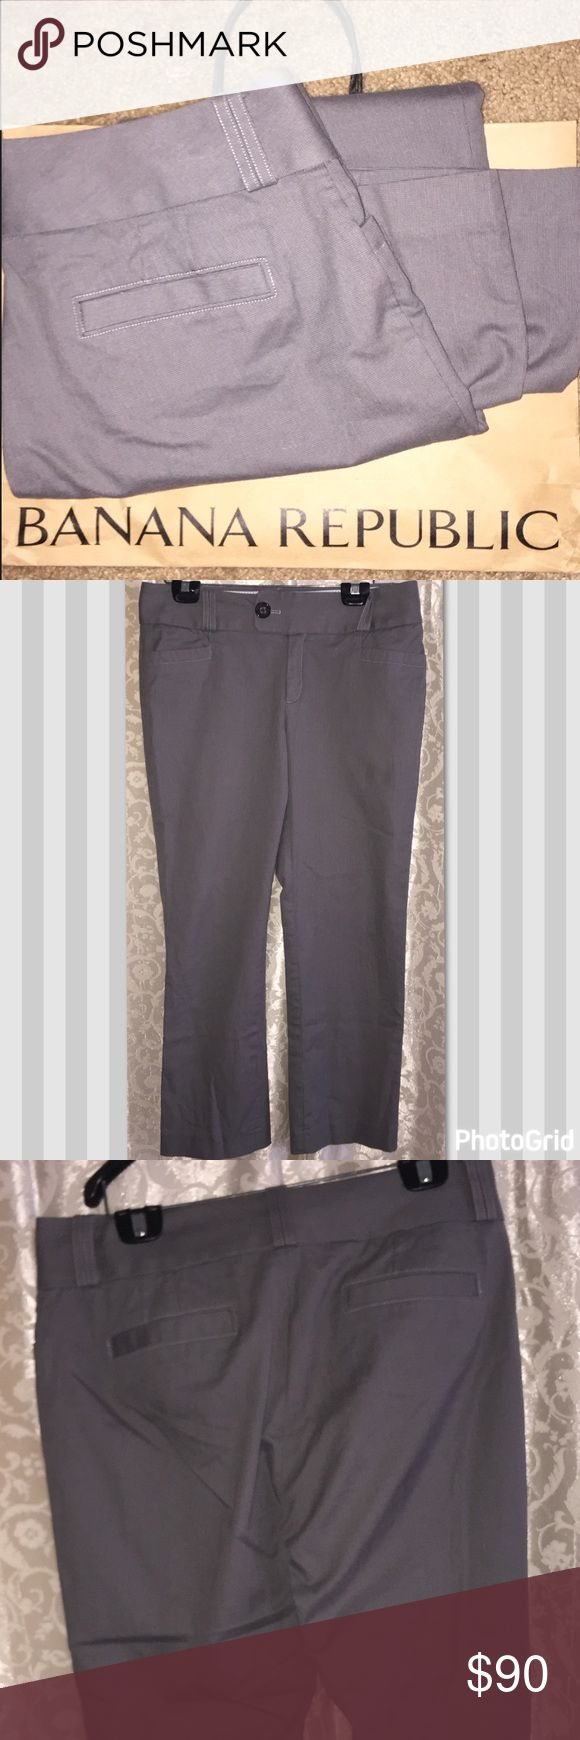 Banana republic stretch pants Banana republic stretch pants gray slacks amazing condition size 12 Banana Republic Pants Trousers